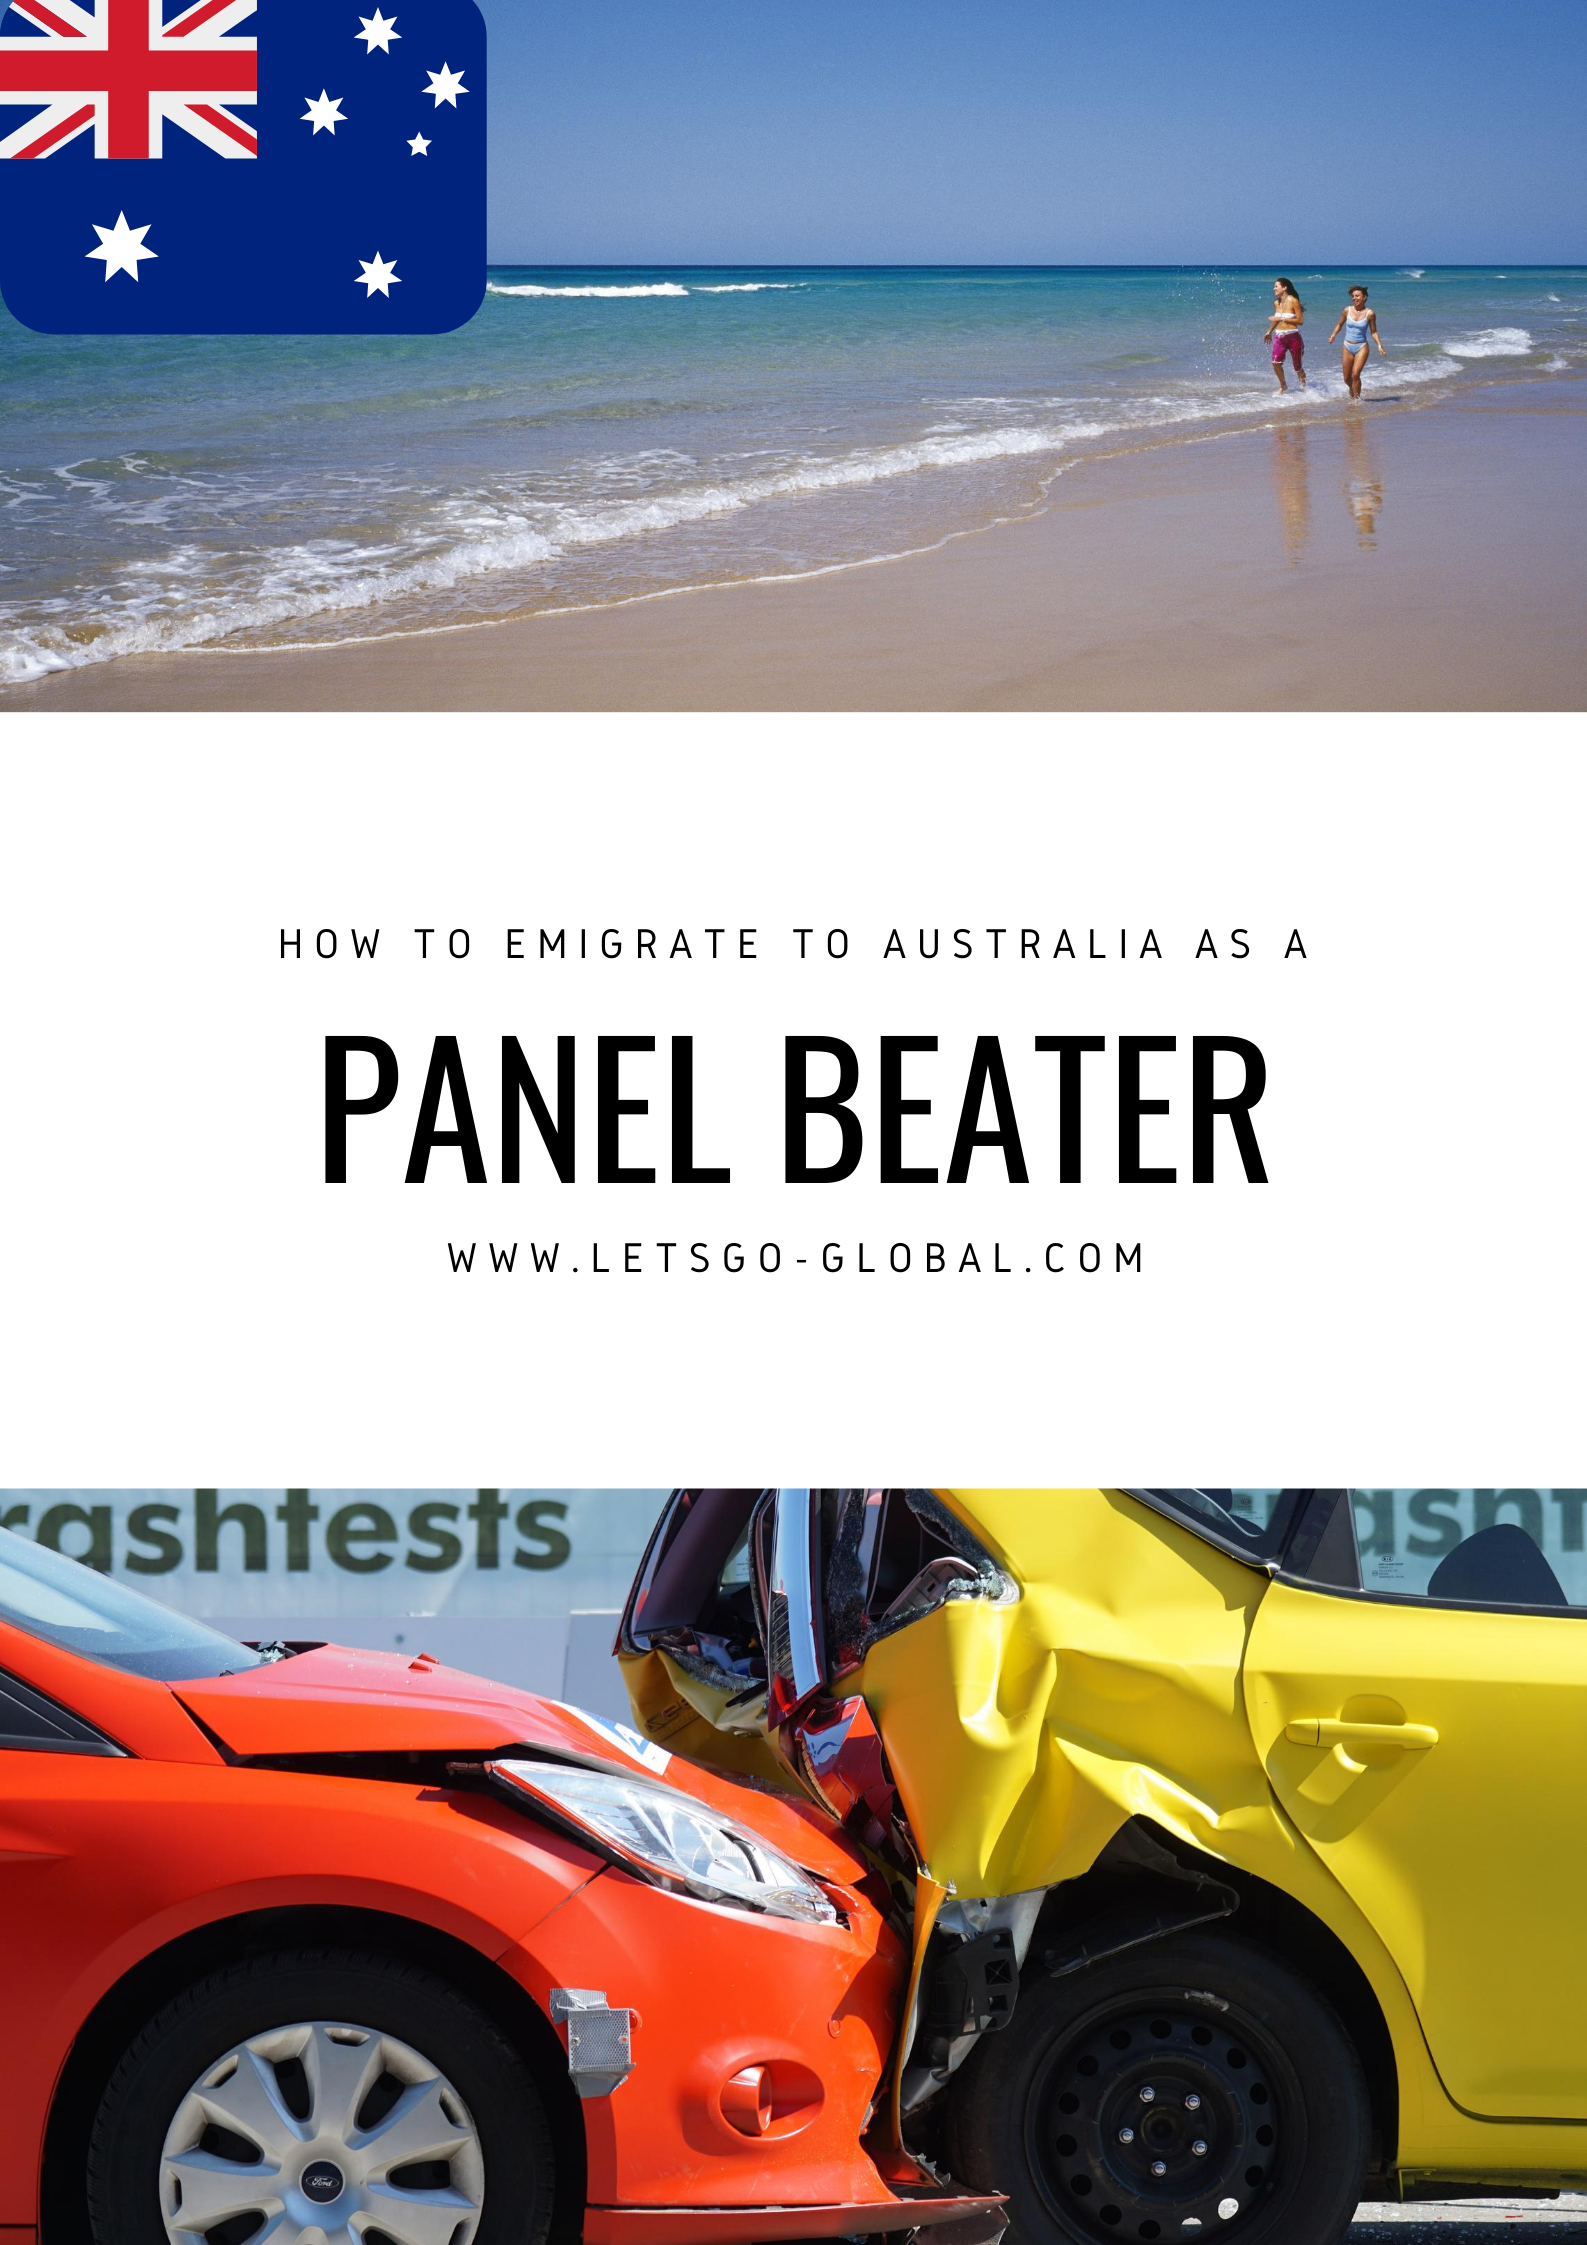 Migrate to Australia as a Panel Beater